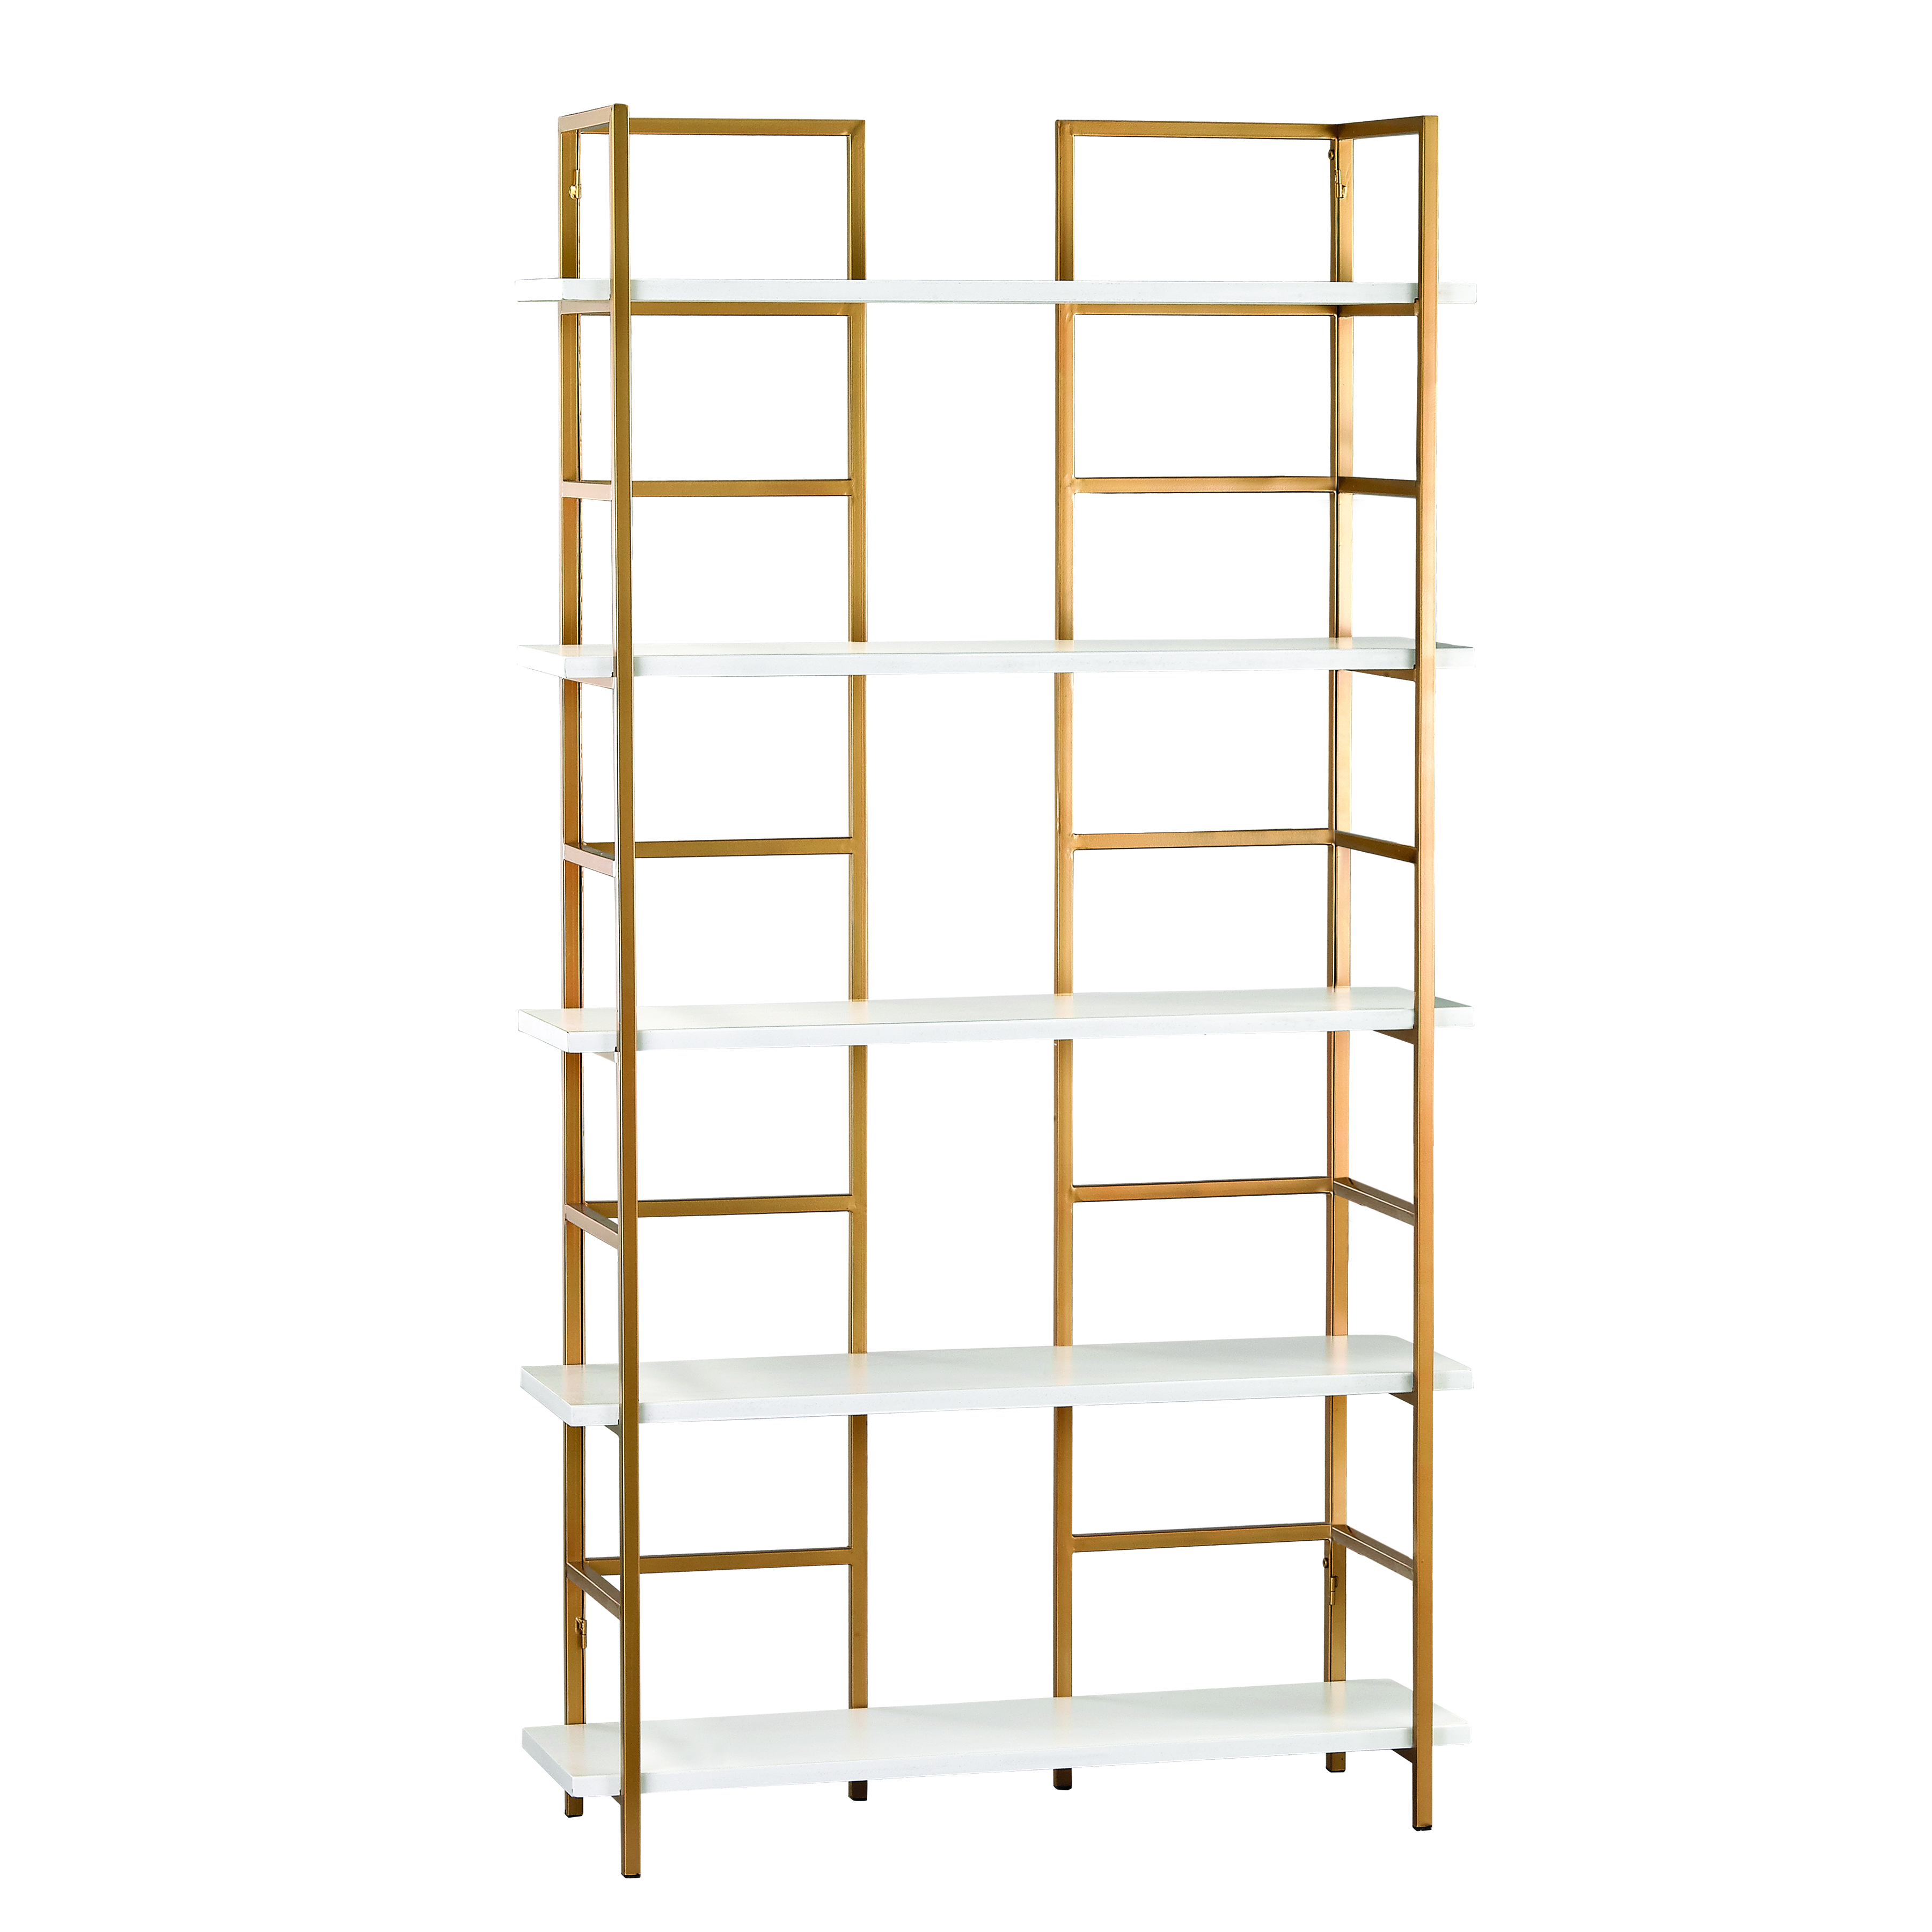 Kline Shelving Unit in White and Gold | Elk Home